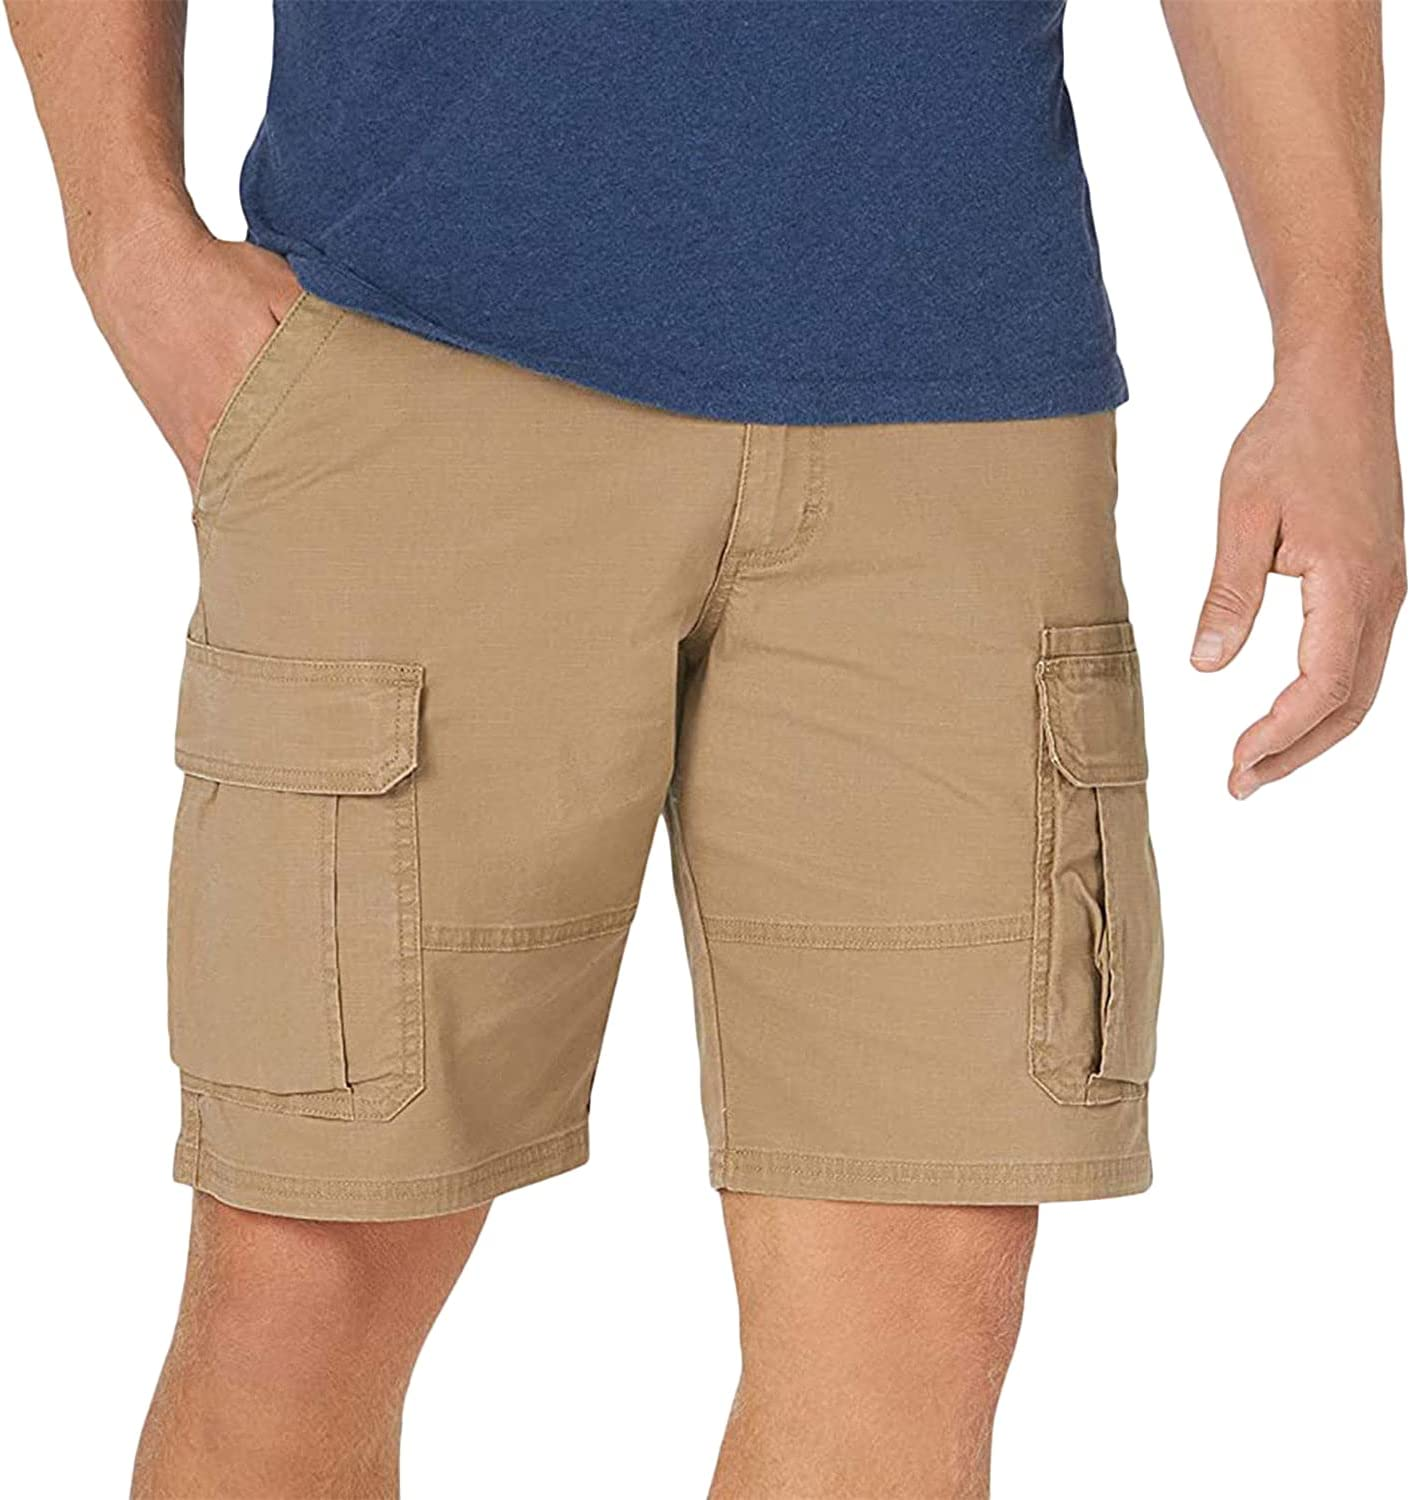 Men's Relaxed Fit Cargo Shorts Big and Tall Twill Multi Pocket Shorts Casual Outdoor Hiking Camo Short Pants (Brown 2,Large)